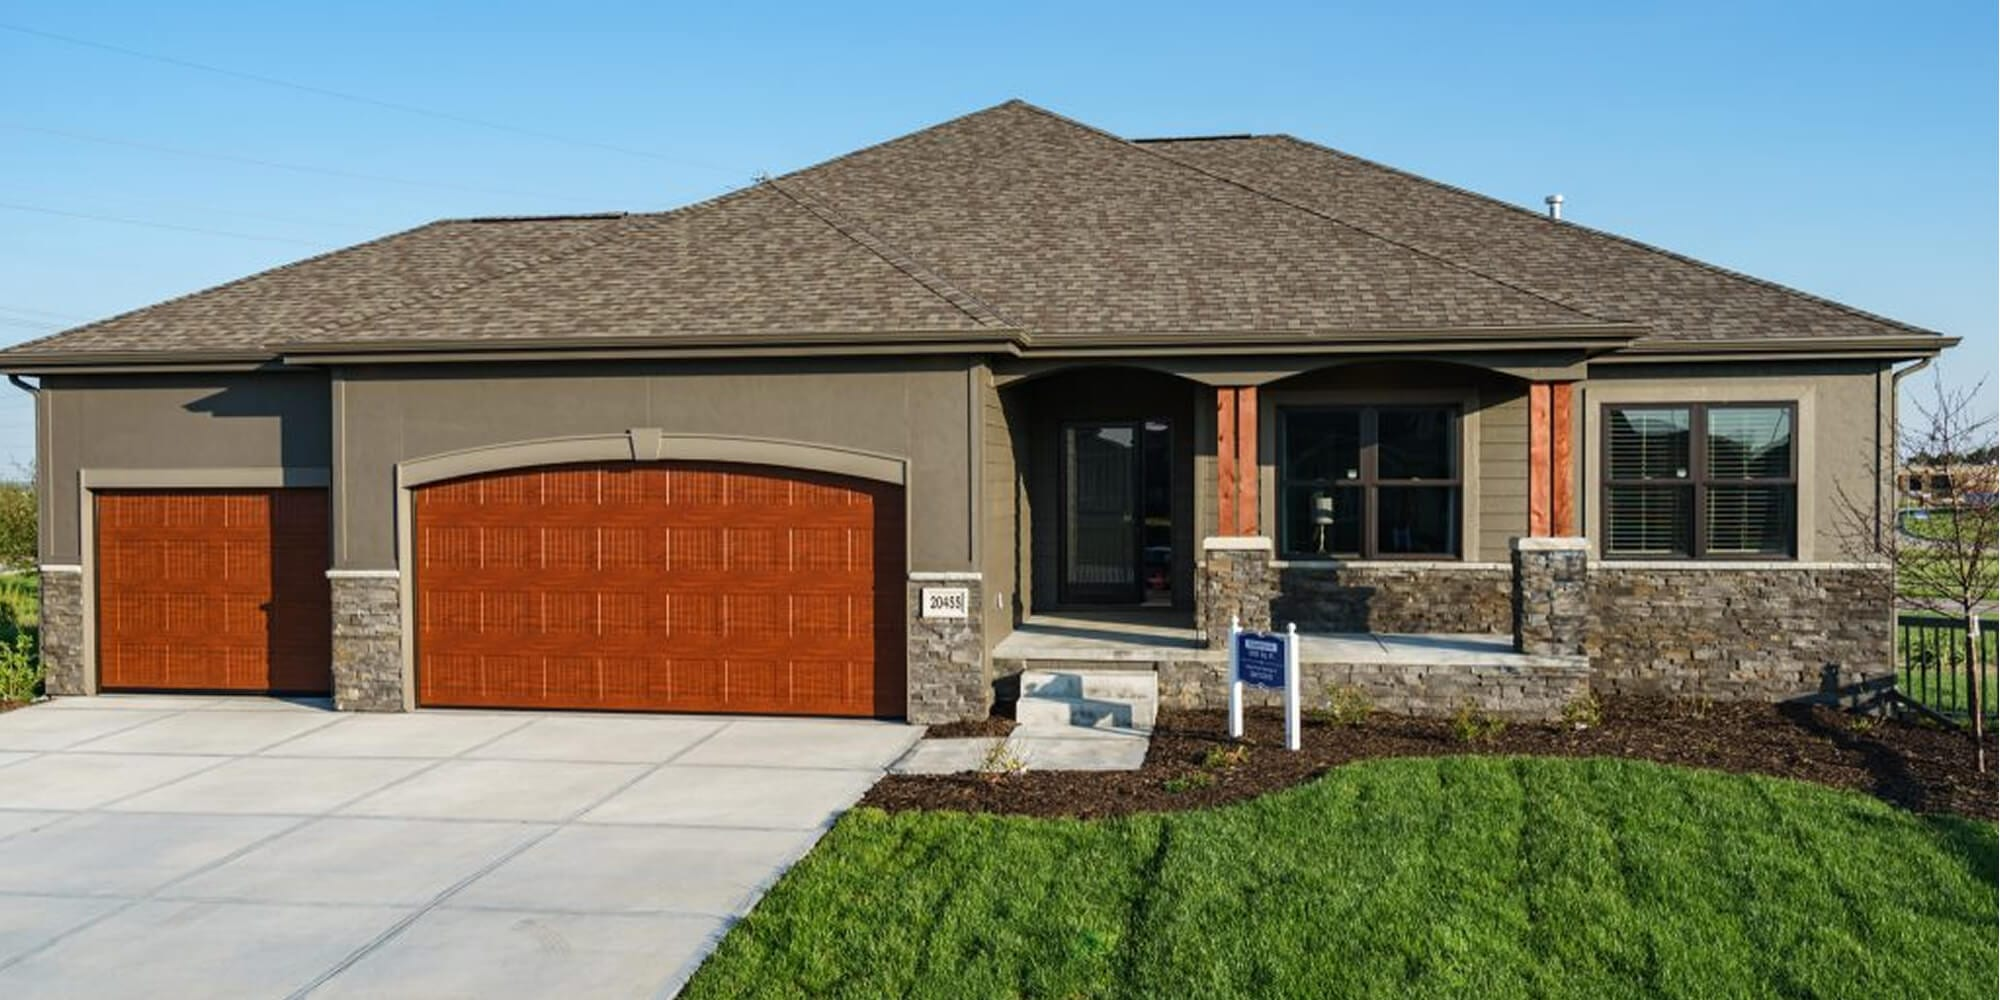 Model Homes In Omaha Ne Home Design